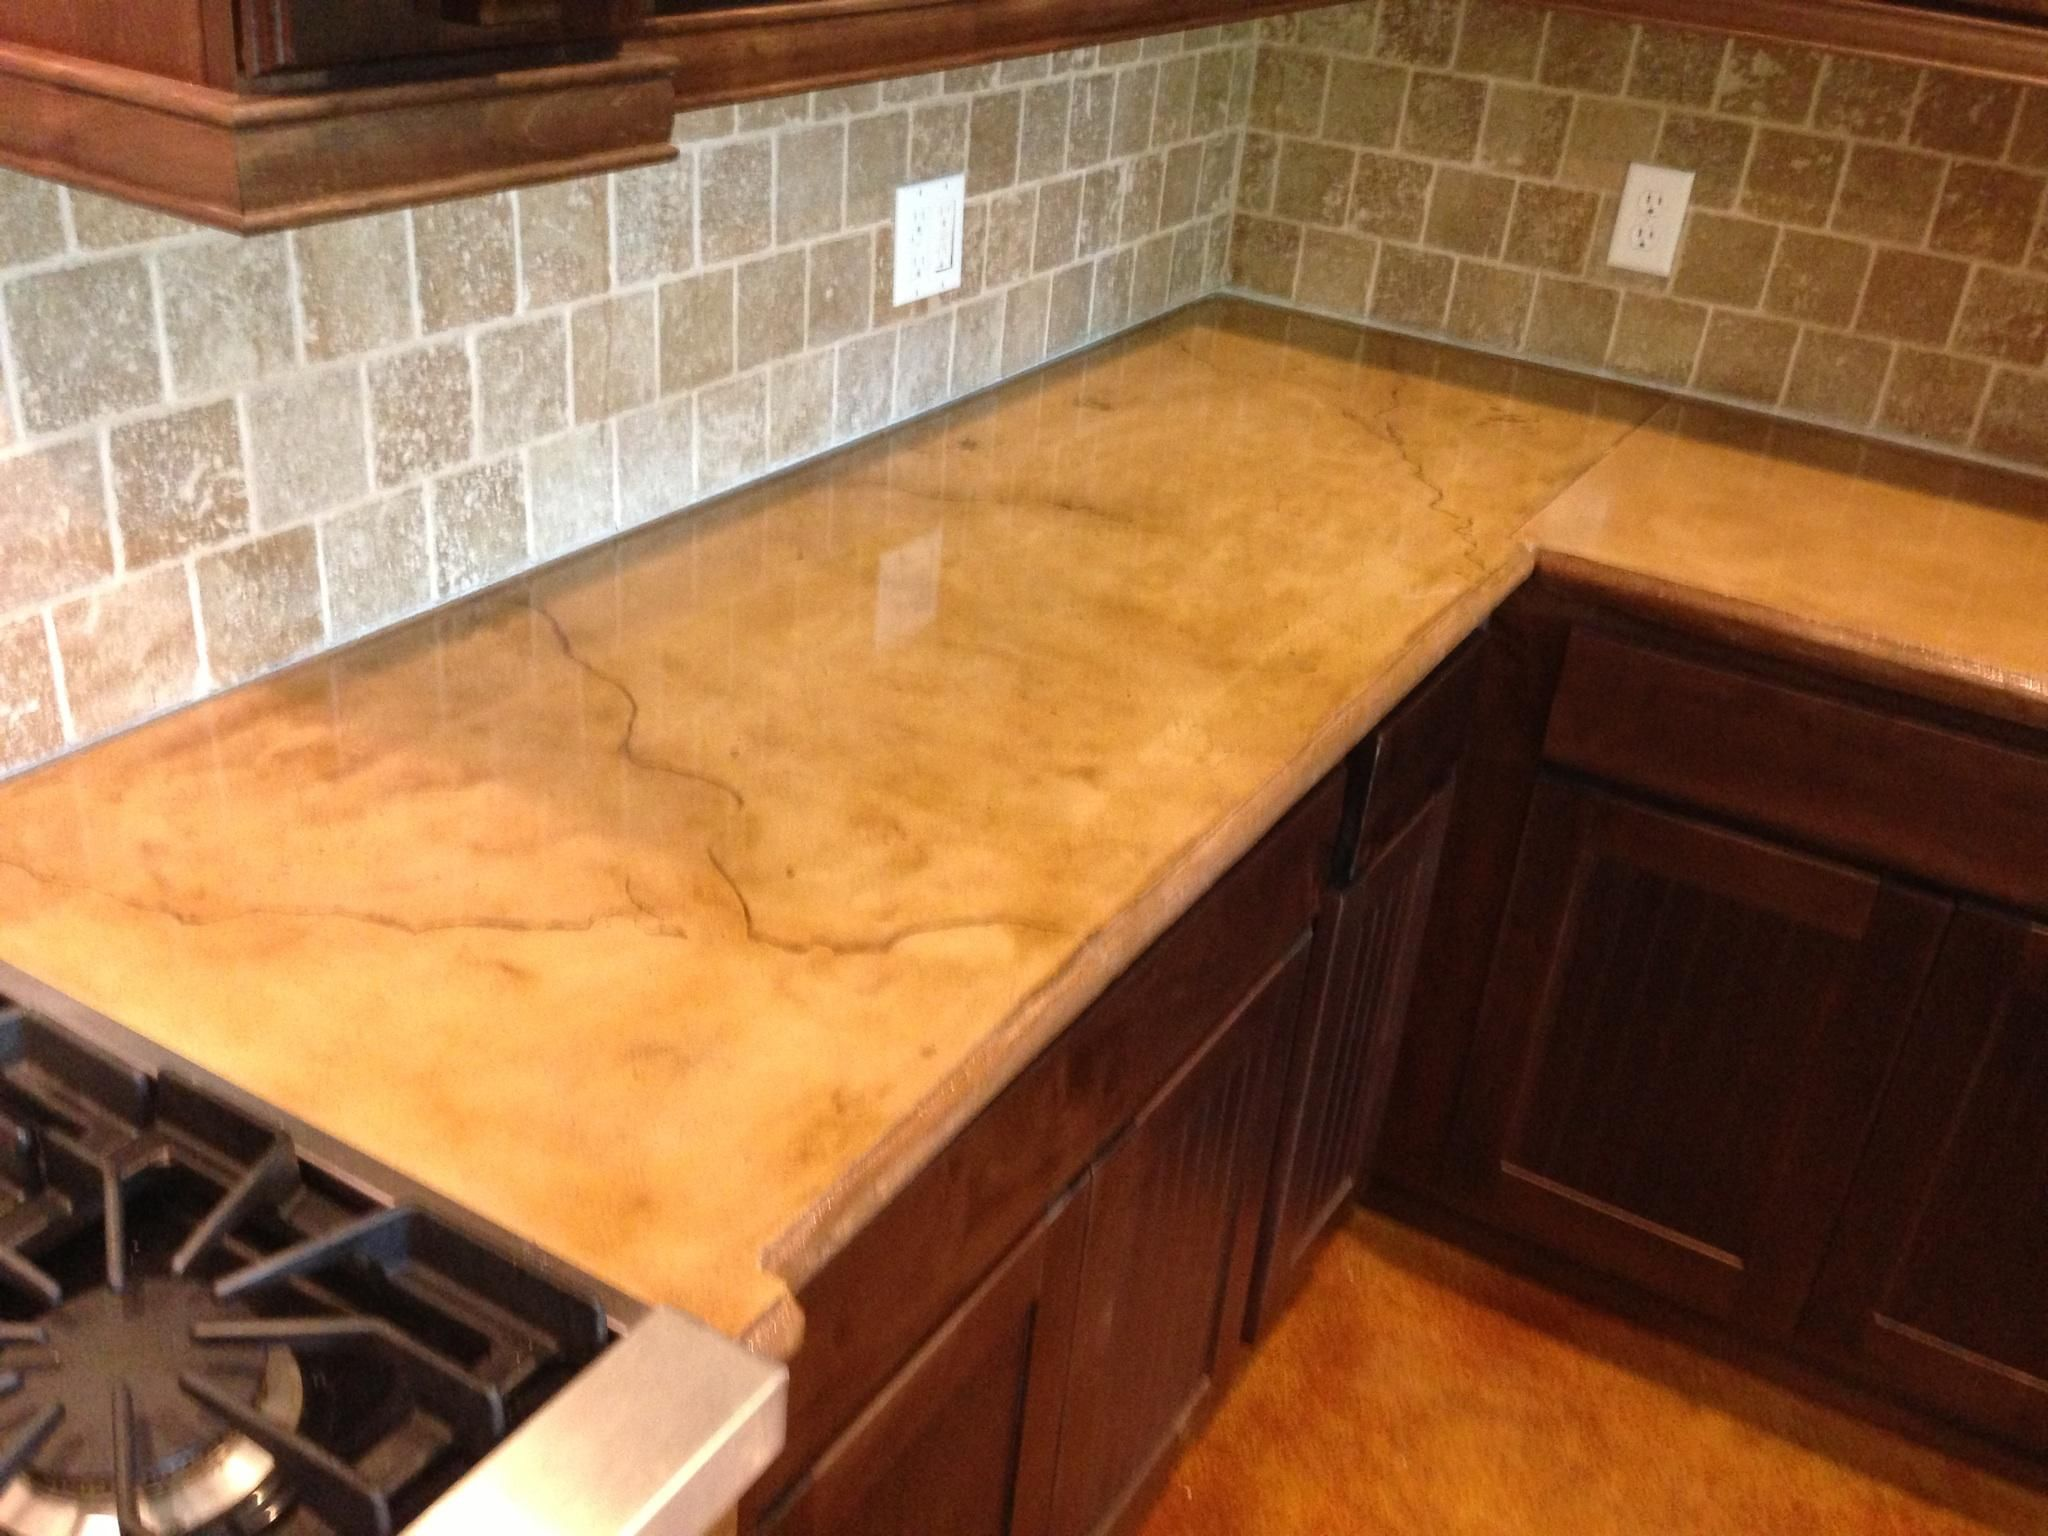 Stained Concrete Countertop With Veining